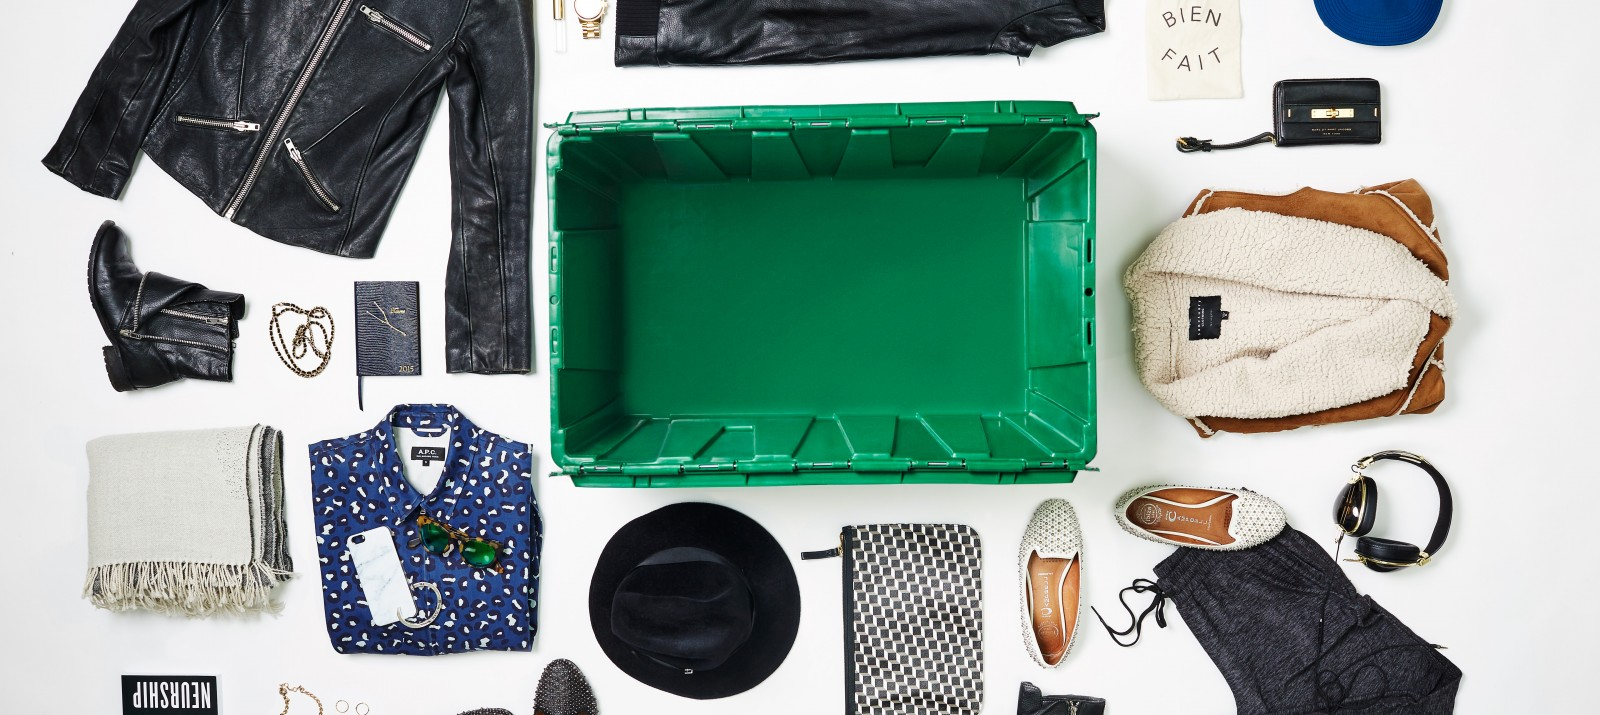 A MakeSpace storage bin surrounded by designer shoes, bags, watches, hats, boots, pants, jackets, bracelets, scarves, necklaces, and headphones.